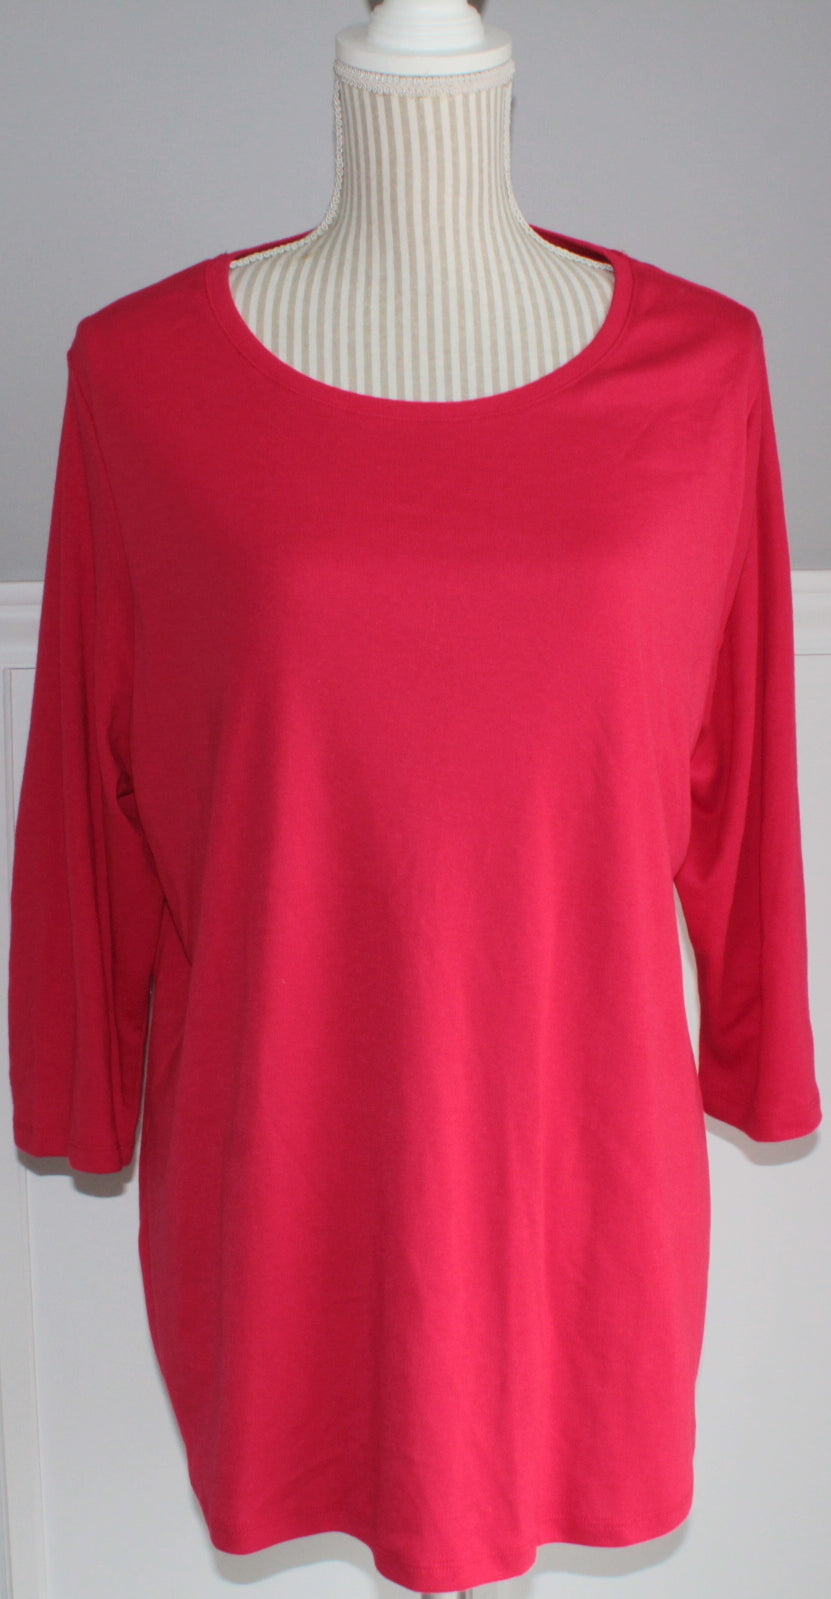 GEORGE RED MATERNITY TOP LADIES MED VGUC